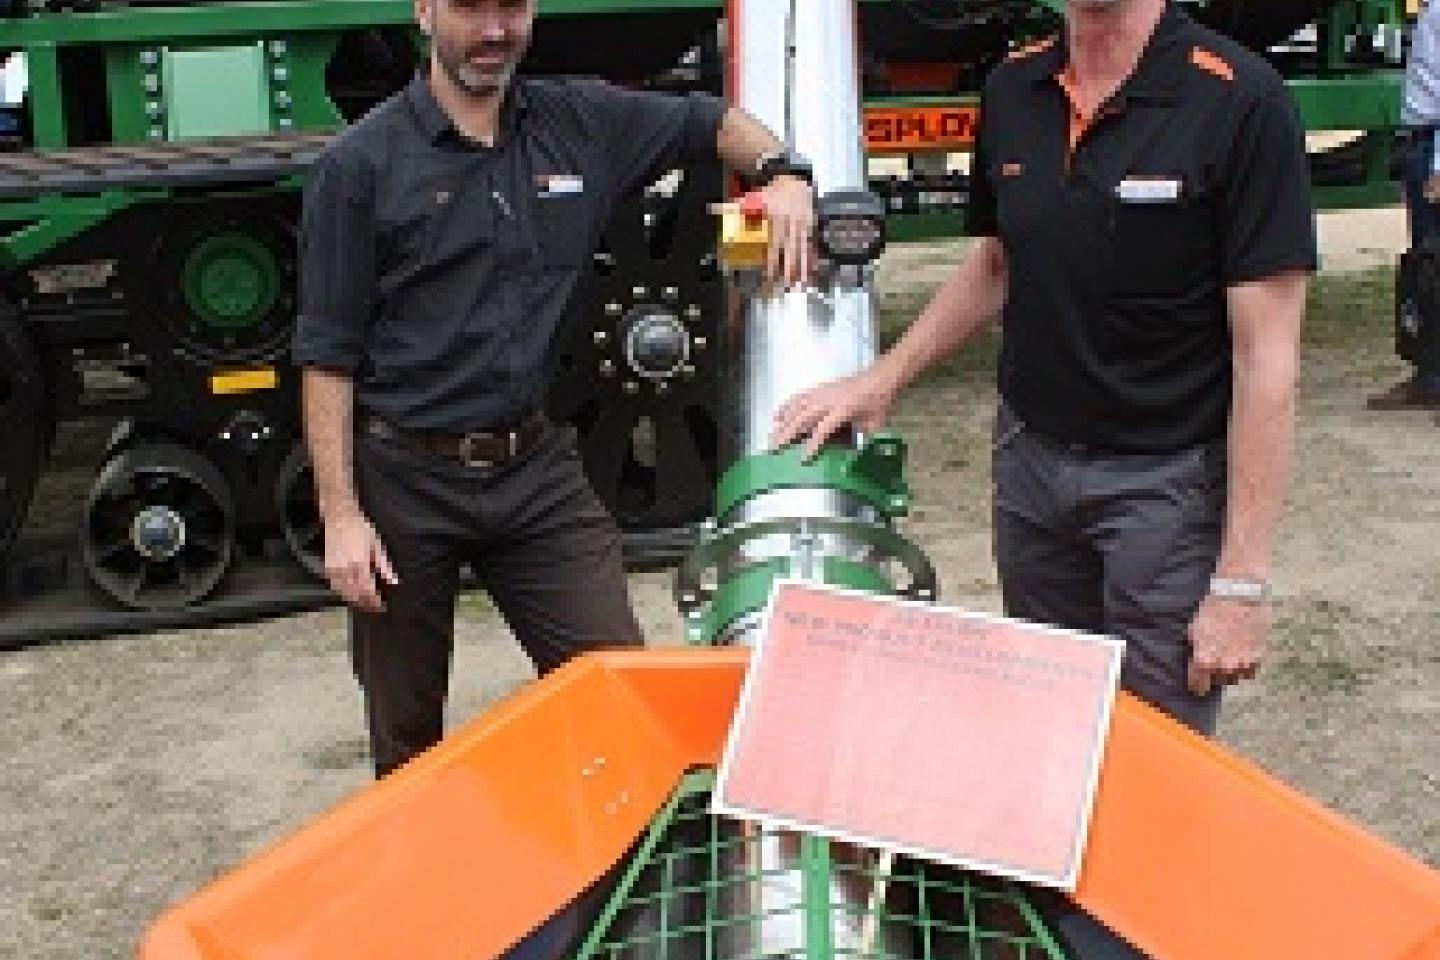 Ausplow engineering manager Carl Vance (left) and Ausplow marketing and sales manager Chris Blight show off the company's new stainless steel auger for the Series II Multistream.